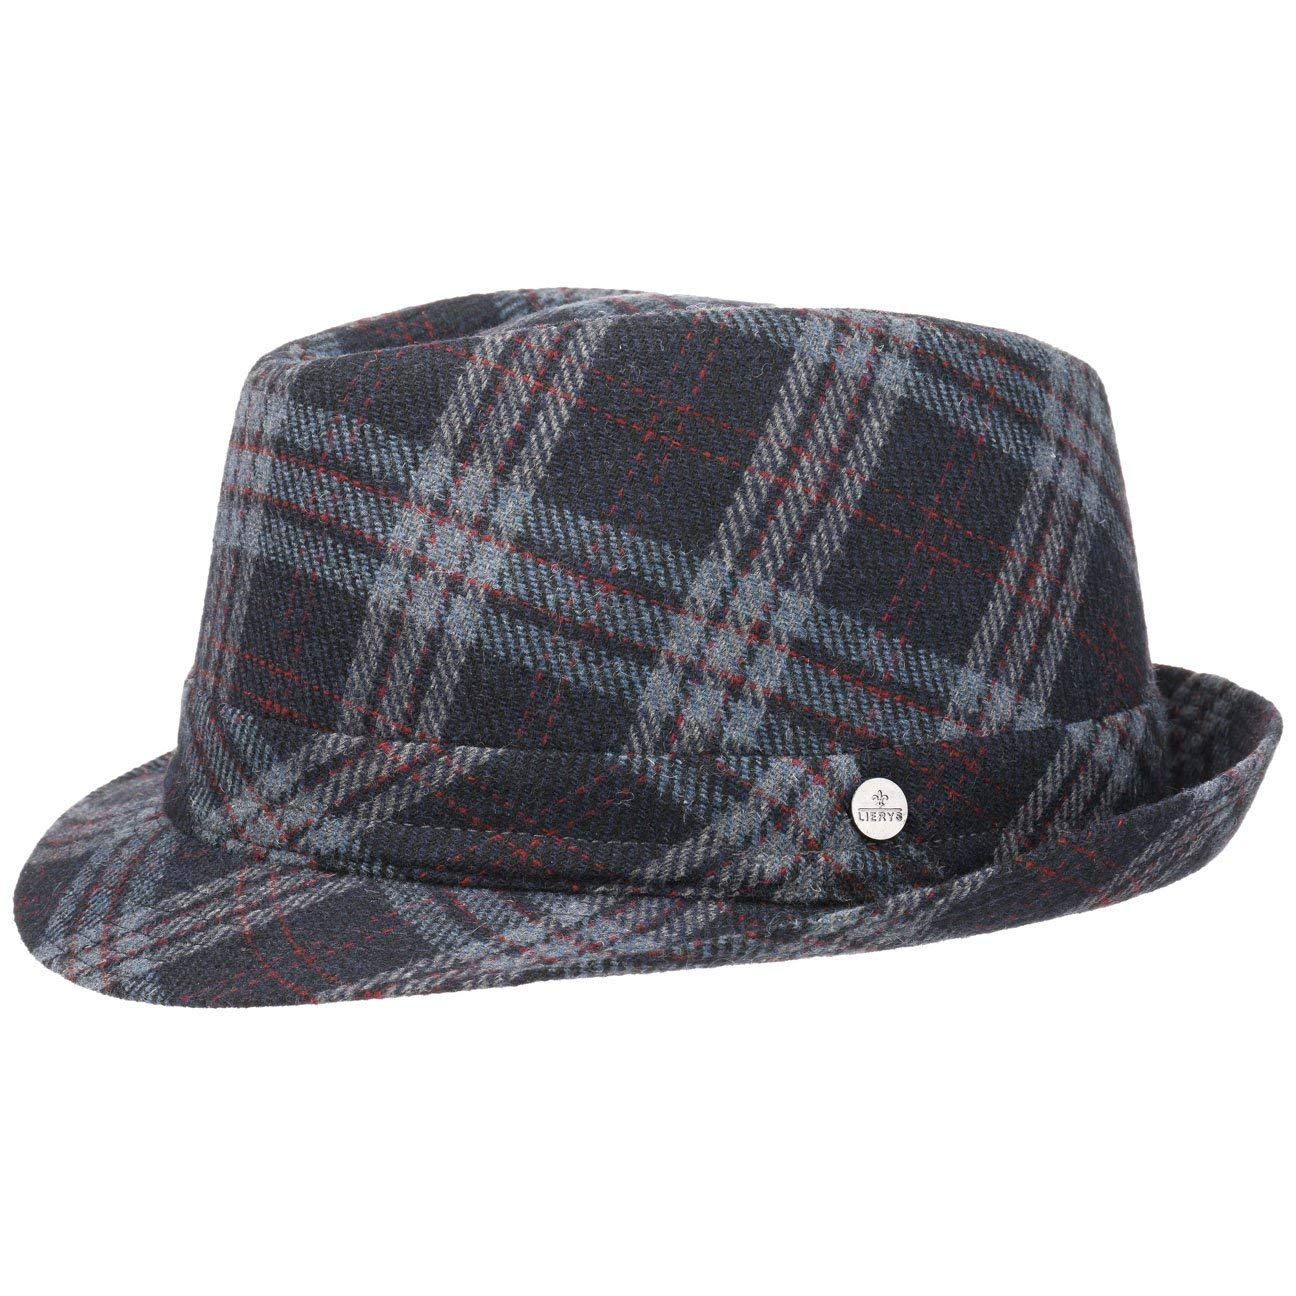 Lierys Cappello in Lana Checked Trilby Uomo Invernale